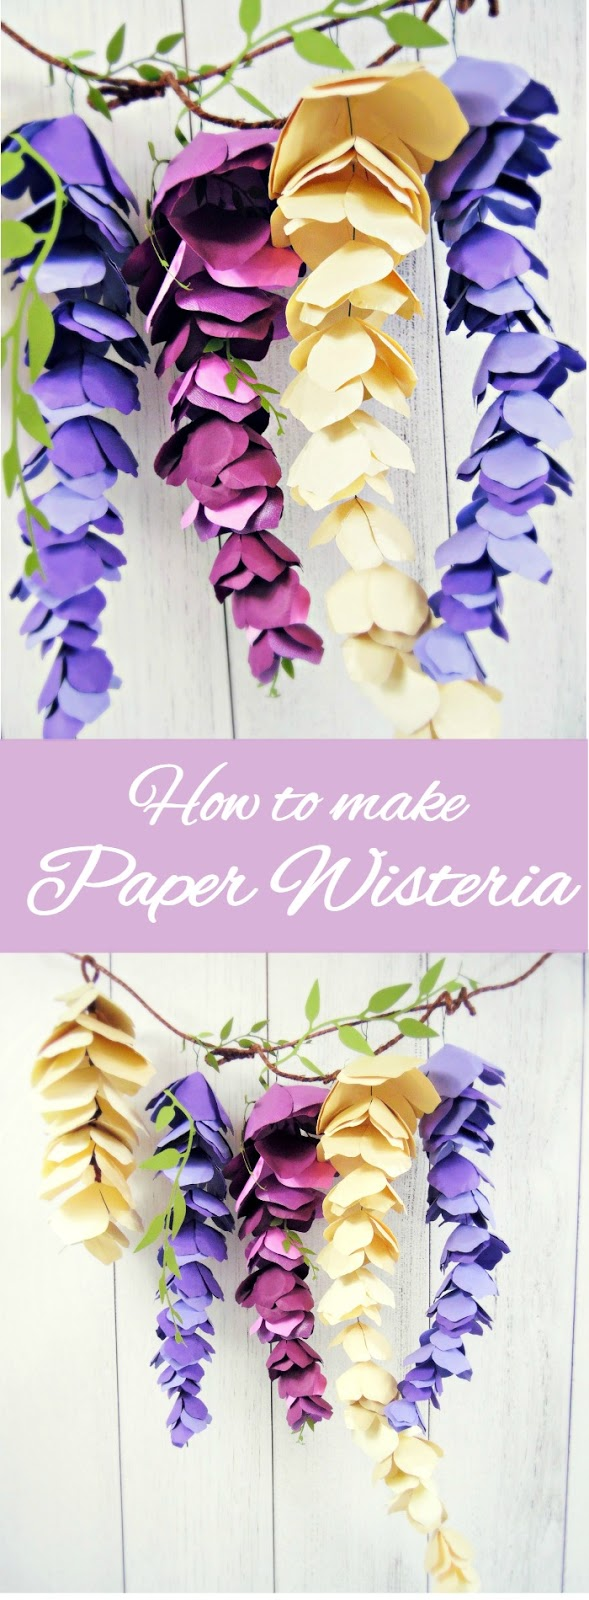 Hanging paper wisteria tutorial templates catching colorflies how to make hanging paper wisteria diy paper flowers wisteria templates mightylinksfo